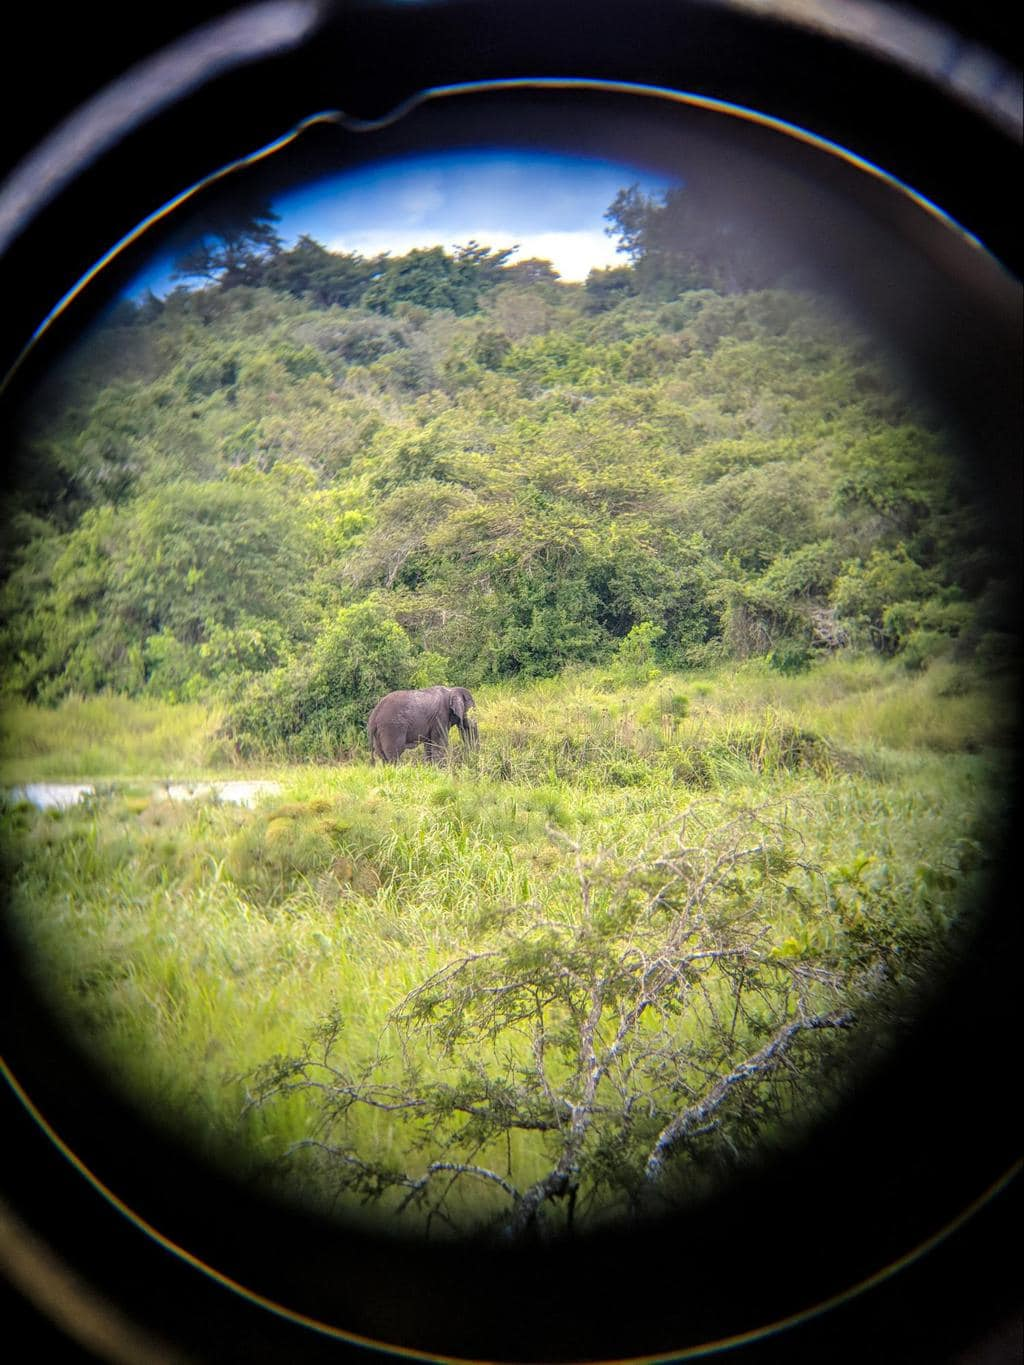 Hard to spot elephants through a binocular